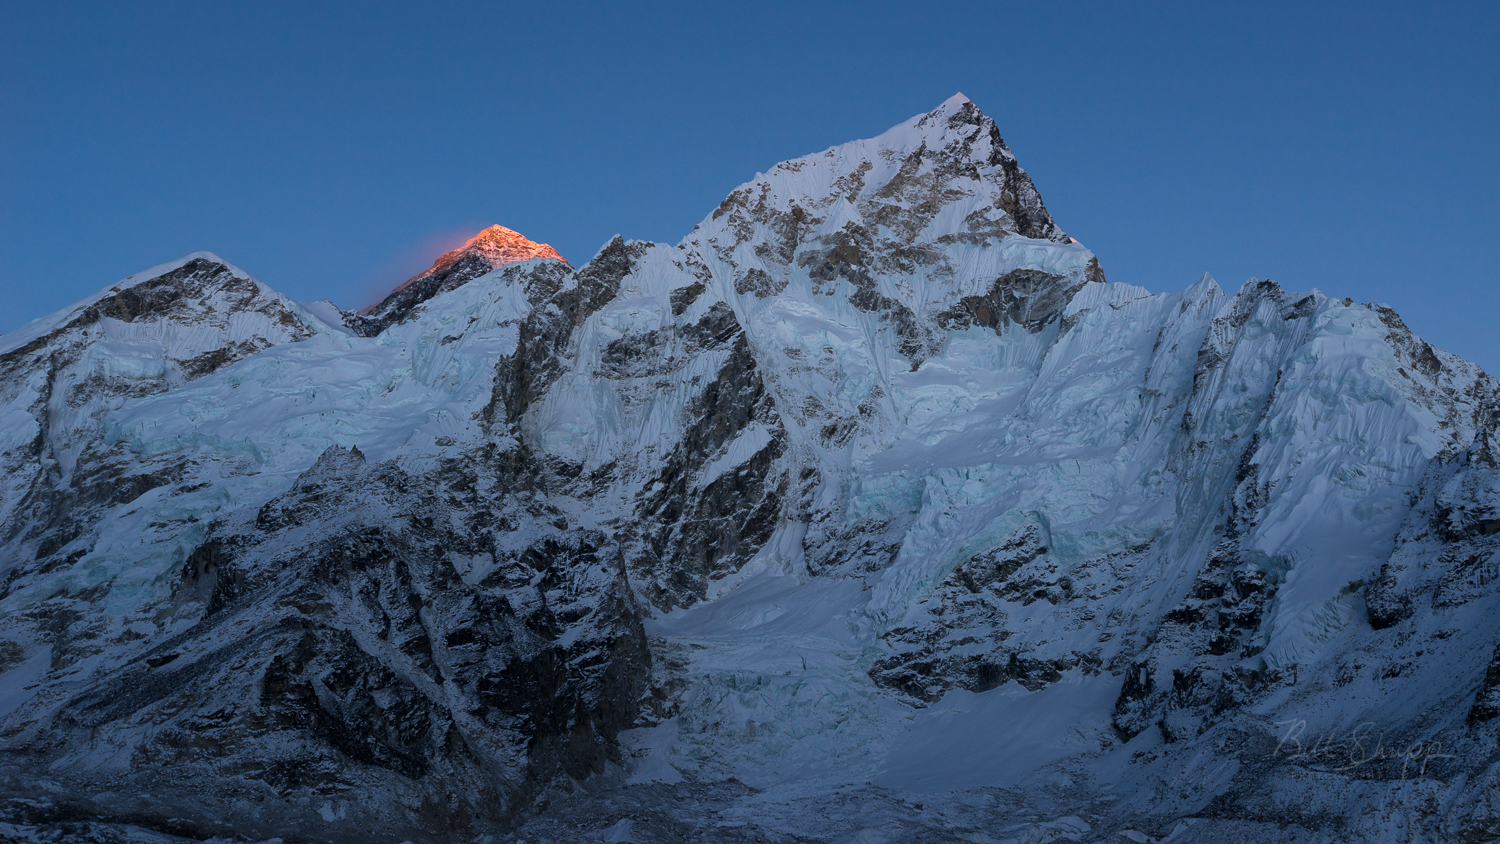 Last Light on Mt. Everest